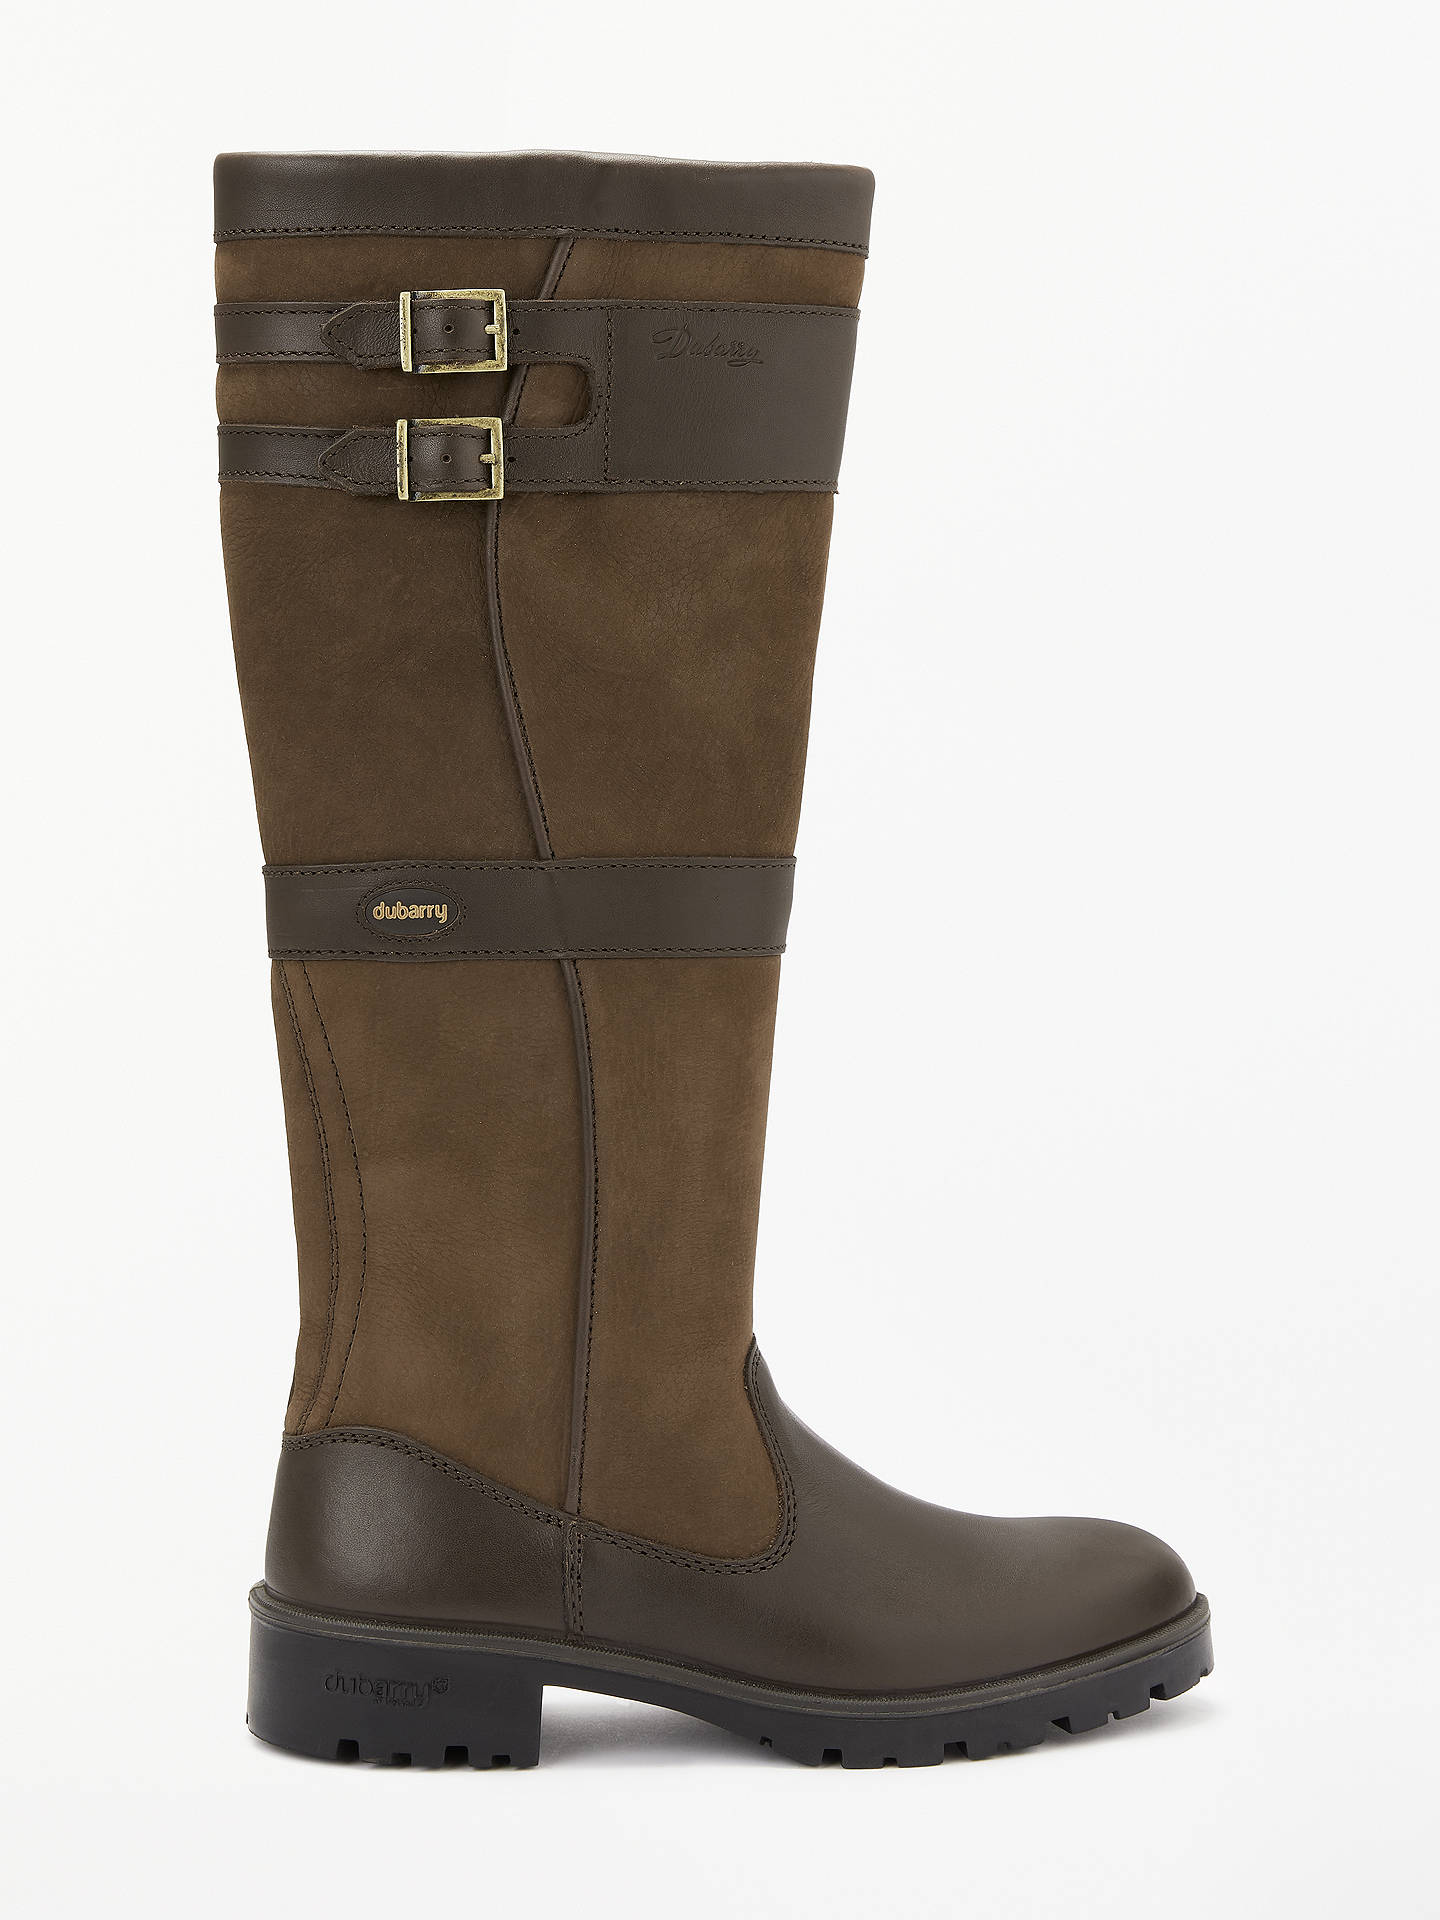 64d0774cf89a Buy Dubarry Longford Knee High Boots